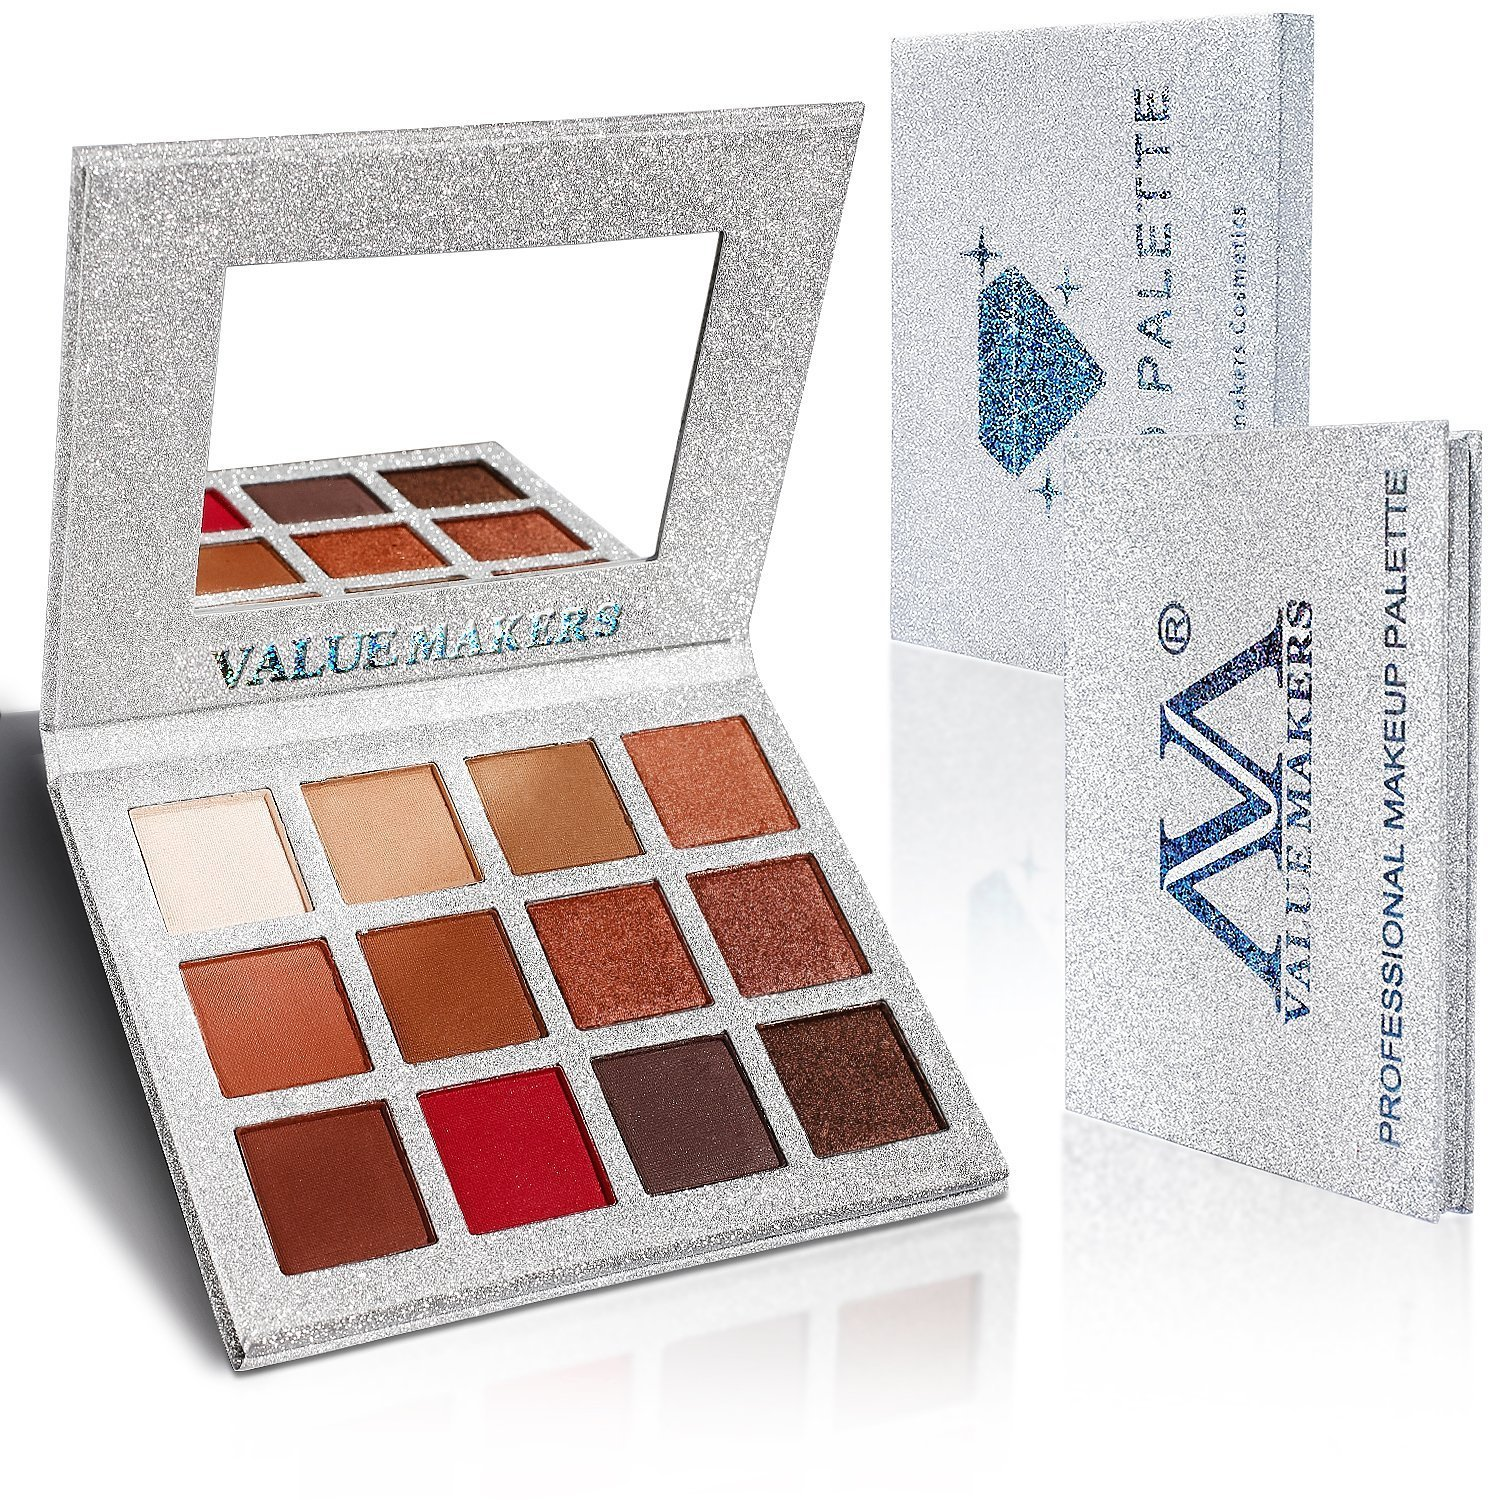 Eyeshadow Makeup Palette, Valuemakers 12 Colors Waterproof & Ultra Pigmented Make-up Eye Shadows - Matte and Shimmer EyeShadow Powder Cosmetic Makeup Set- Vegan and Cruelty Free